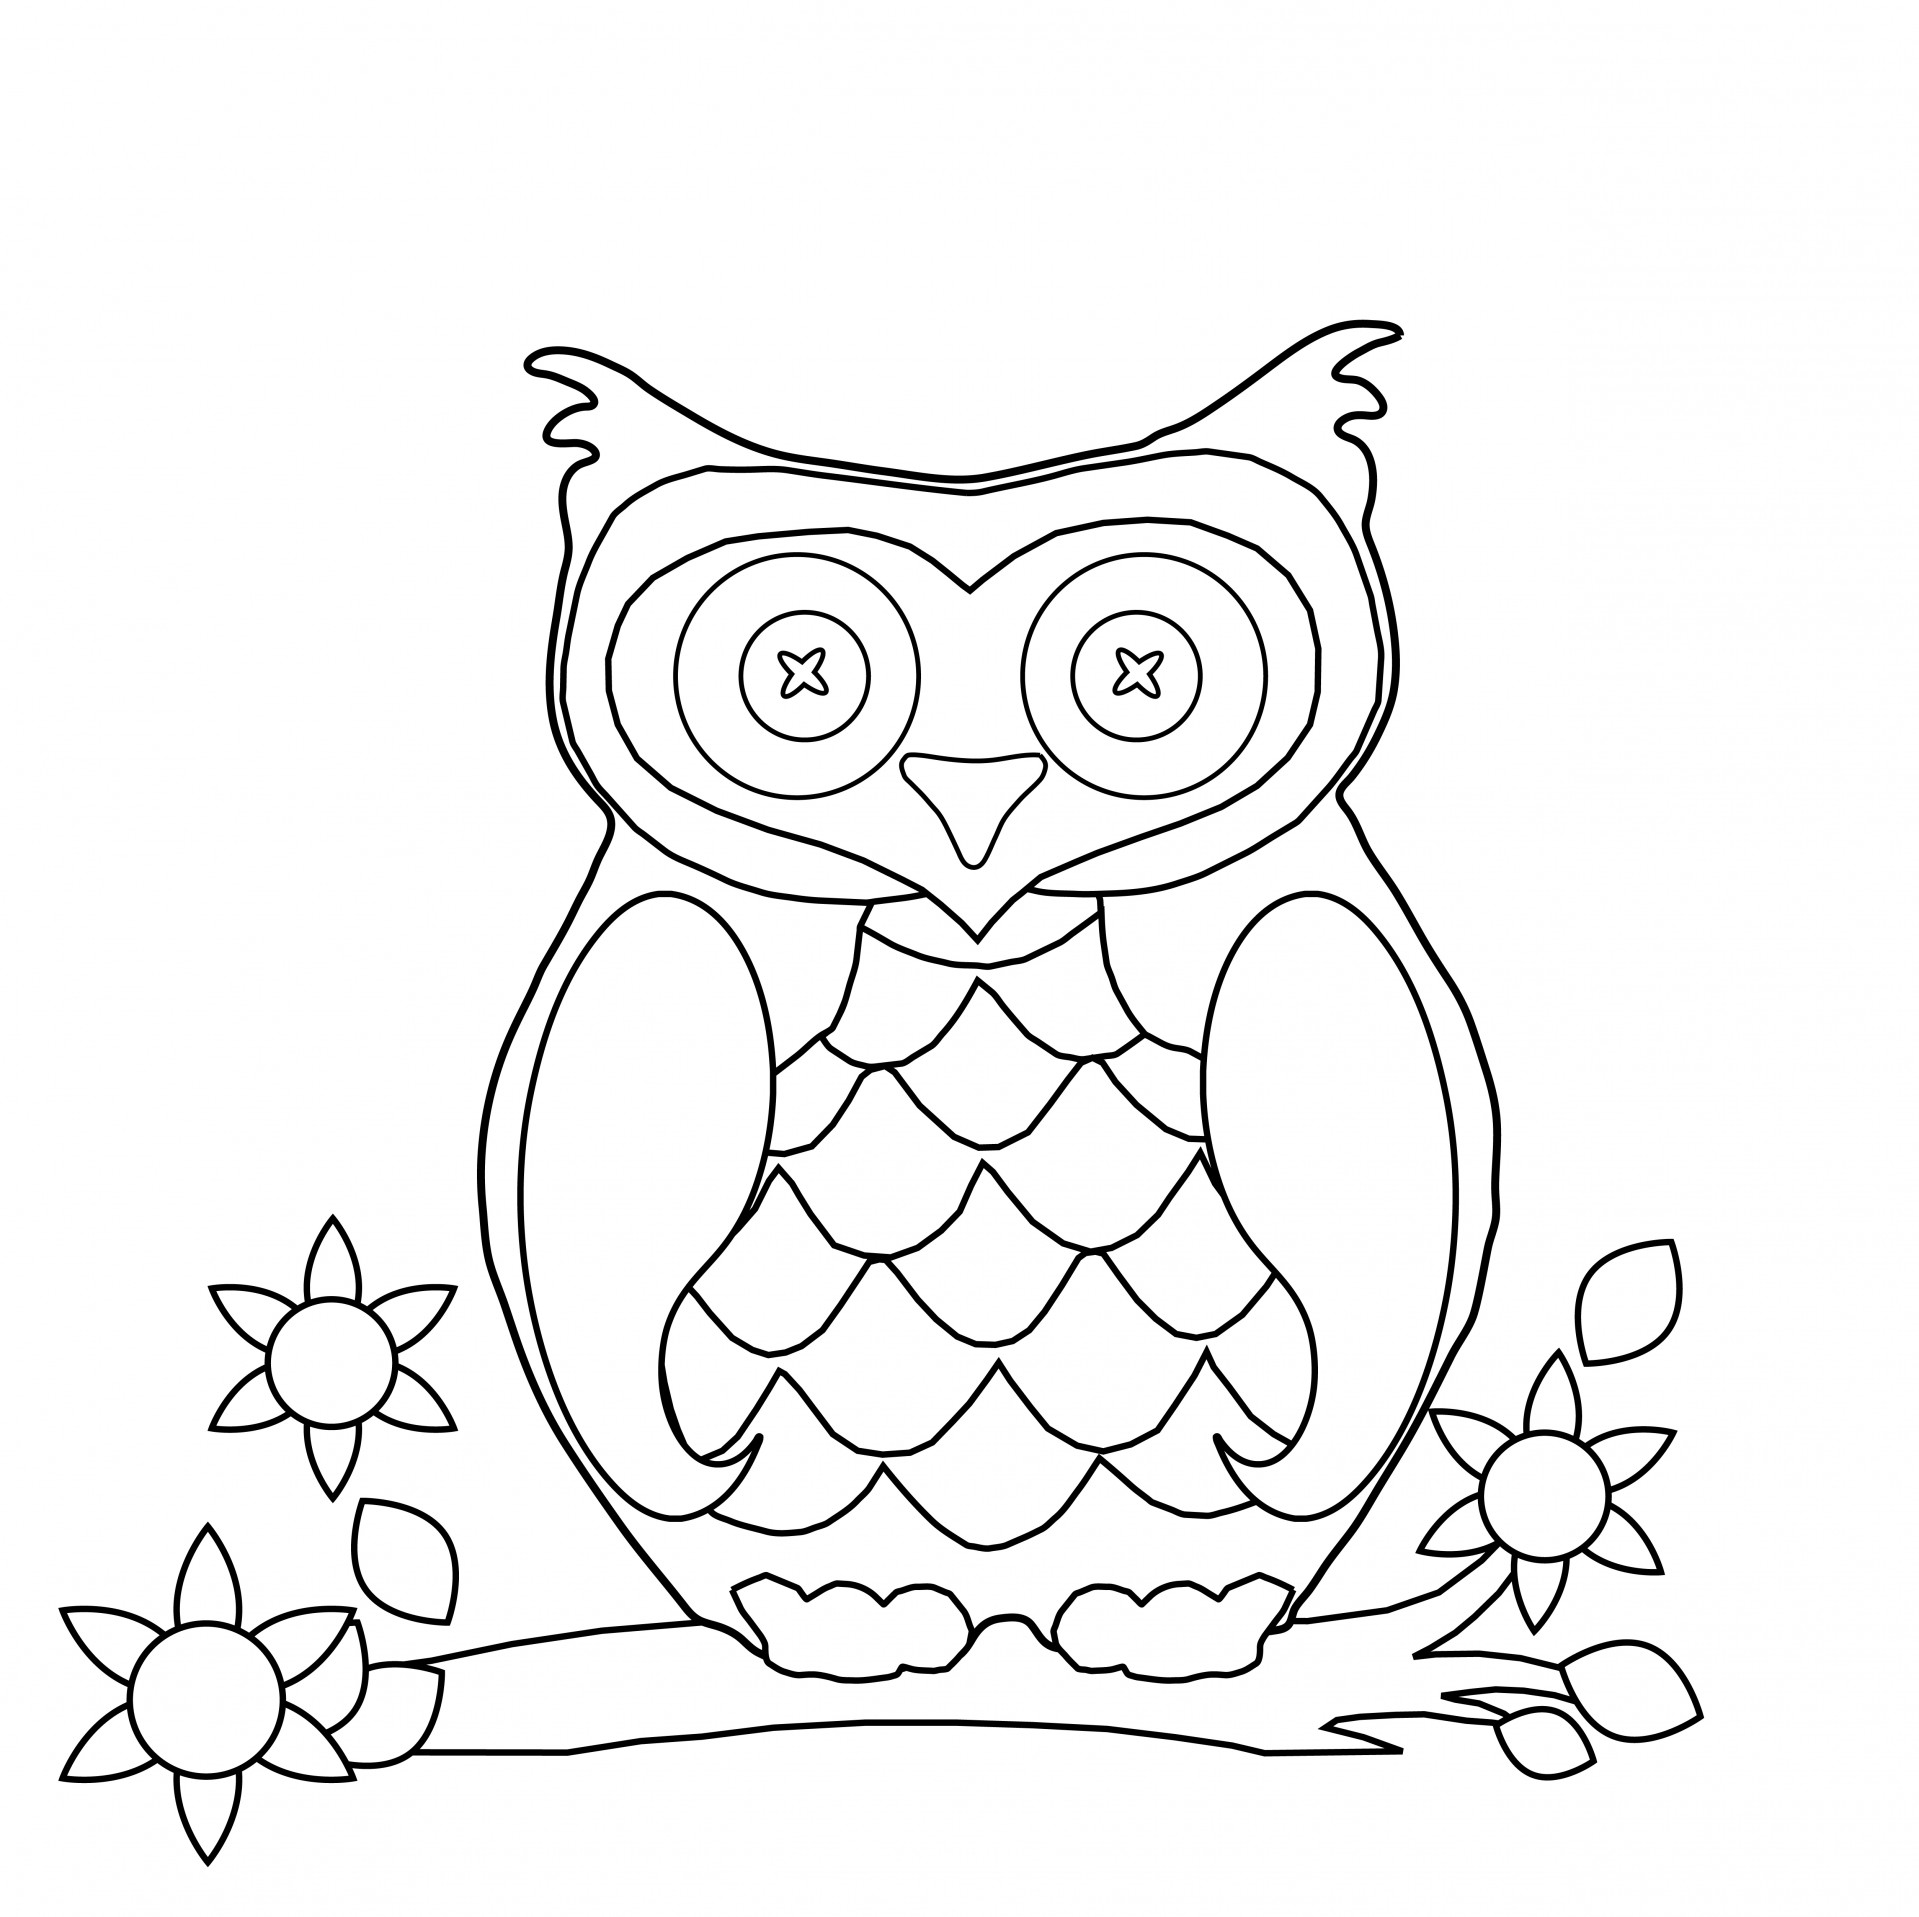 art pictures to color get this art deco patterns coloring pages for grown ups art pictures to color